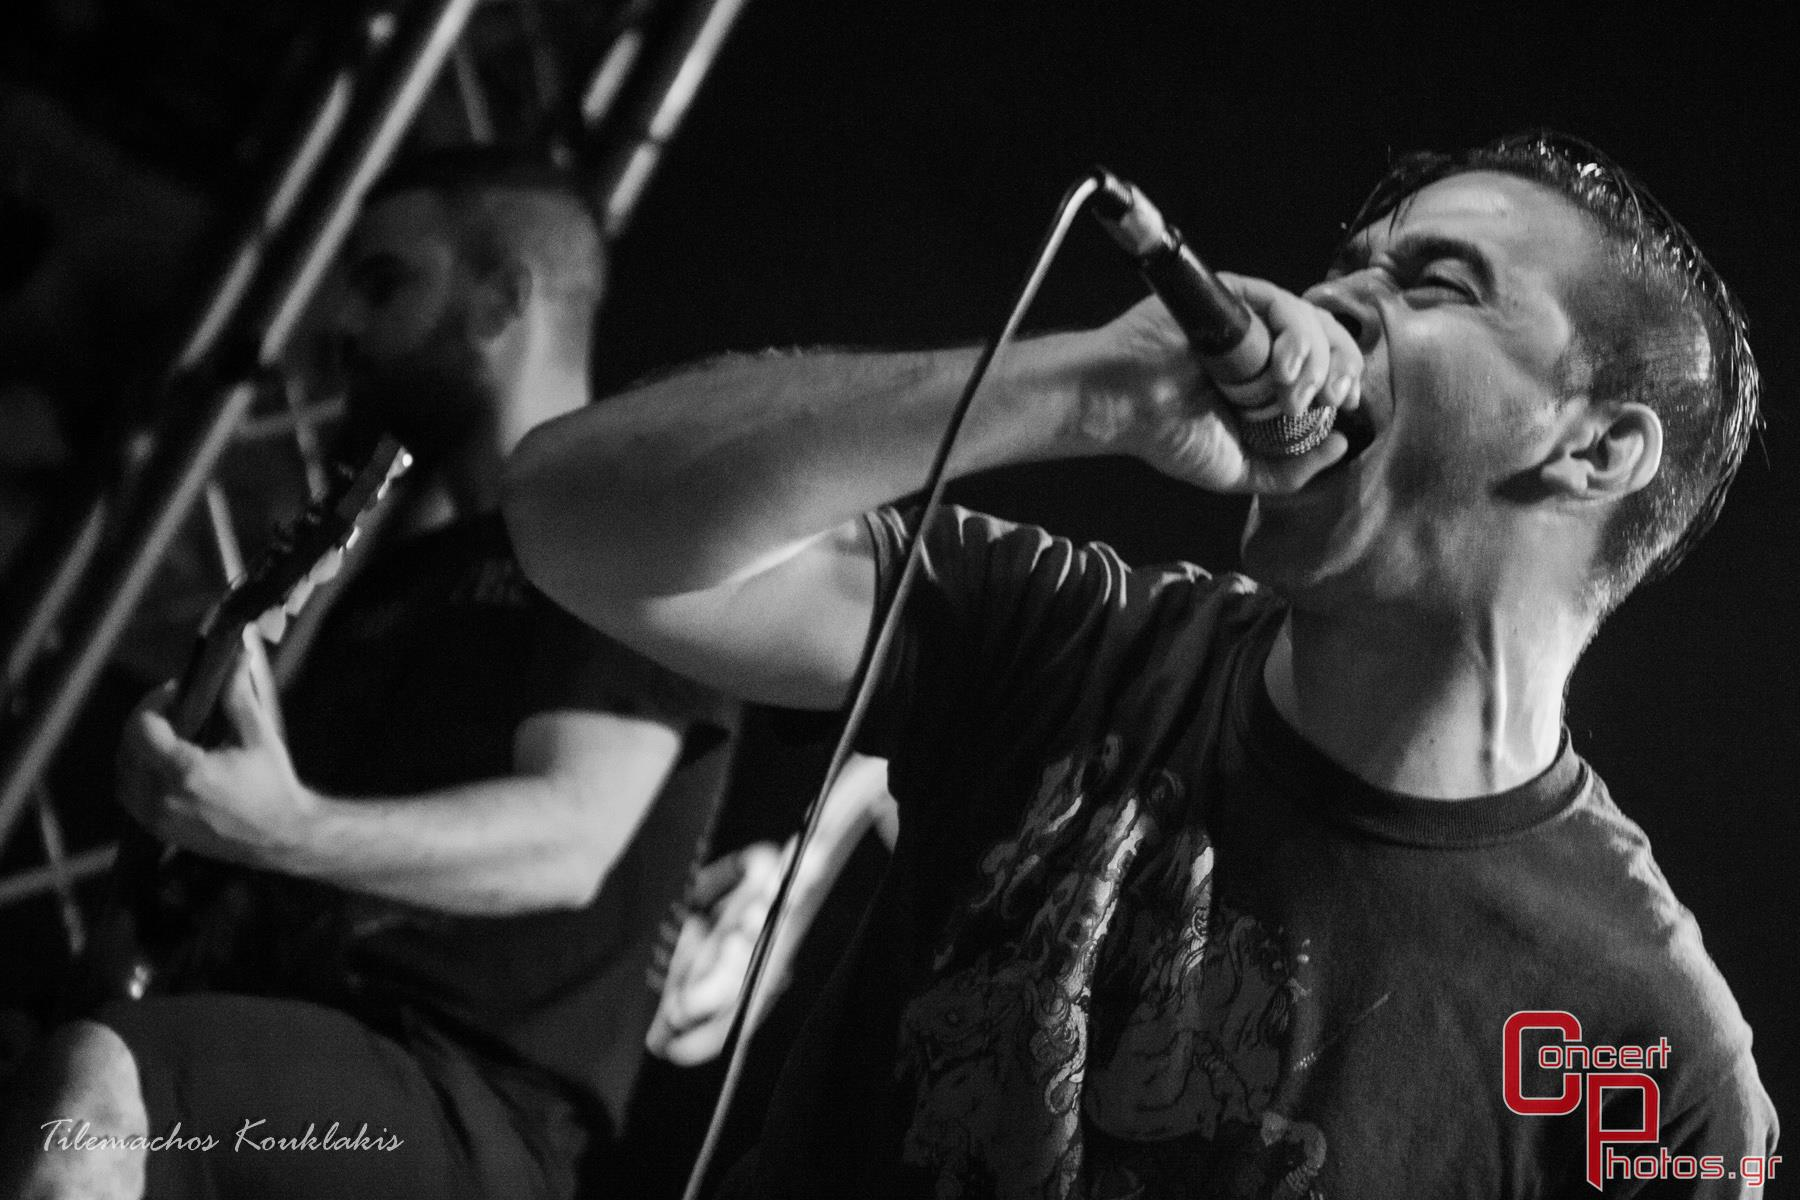 Raised Fist - Endsight - The Locals-Raised Fist photographer:  - Endsight_06